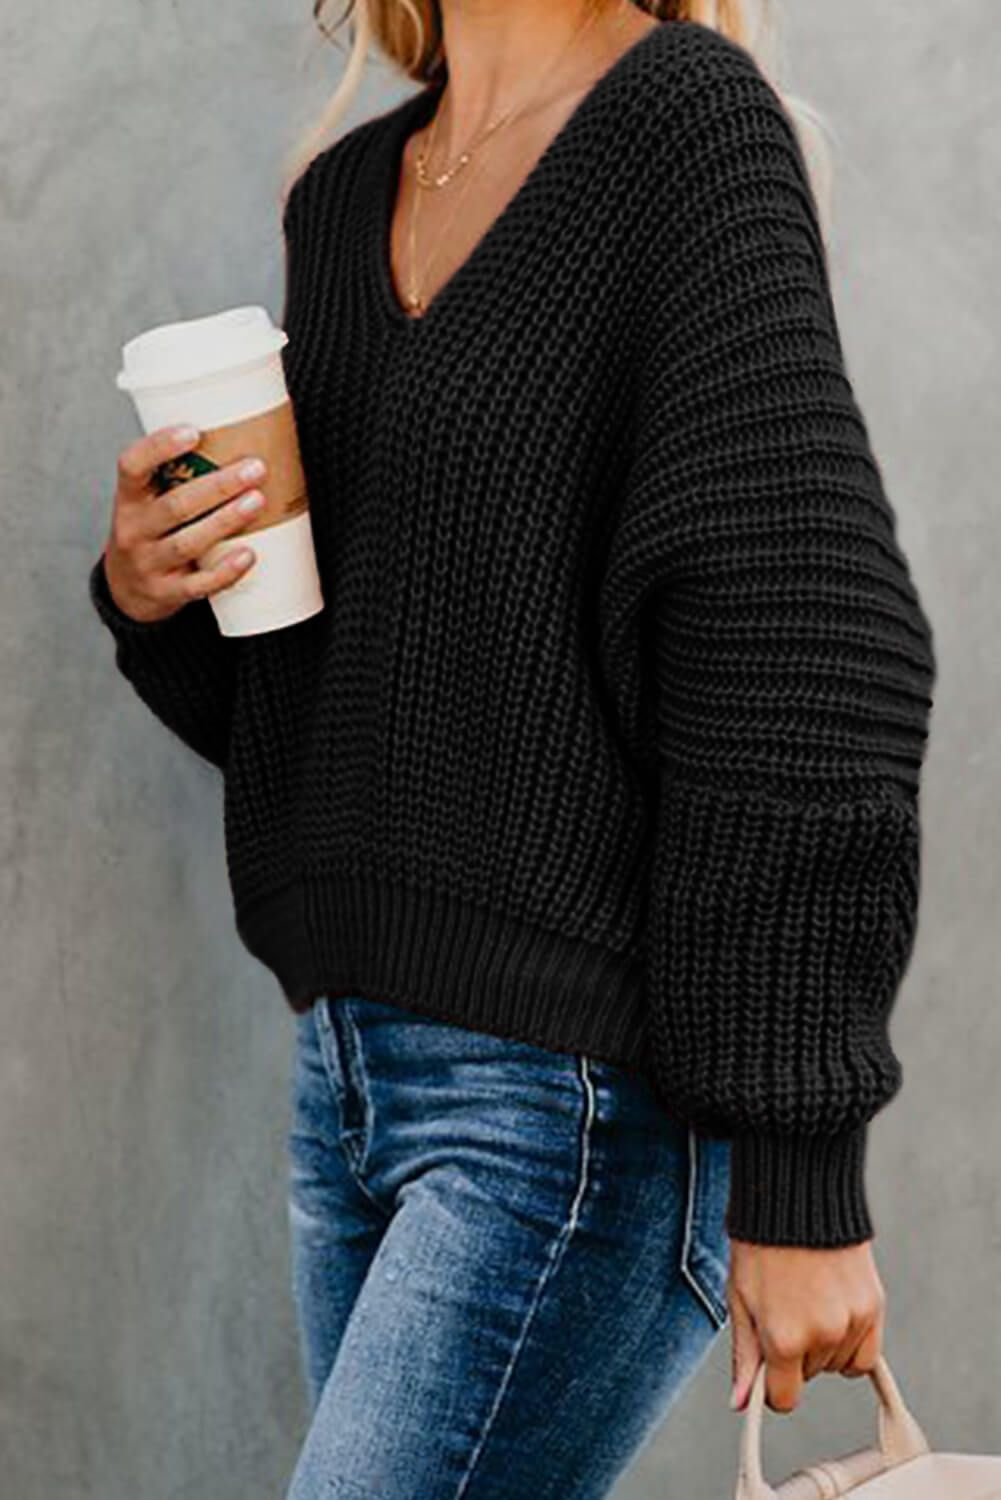 Black Pullover Winter Sweater Plus Size Clothing Black Sweater Sweater For Women Warm Sweater Women Pullover Loose Knit Sweater